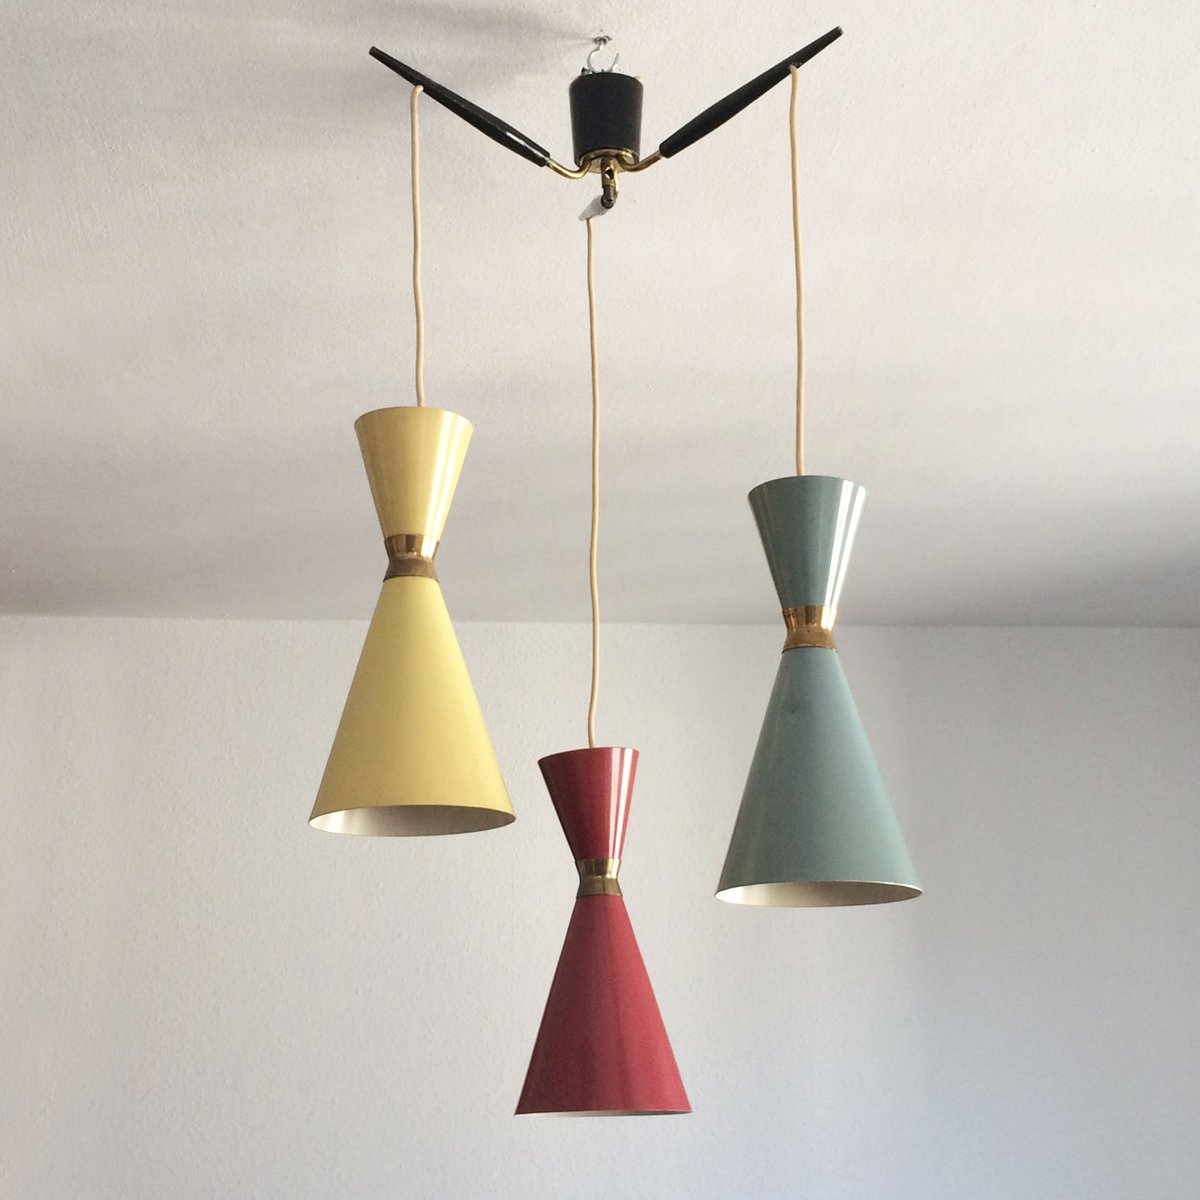 Mid Century Vintage Lights For Sale: Mid-Century Diabolo Pendant Light, 1950s For Sale At Pamono